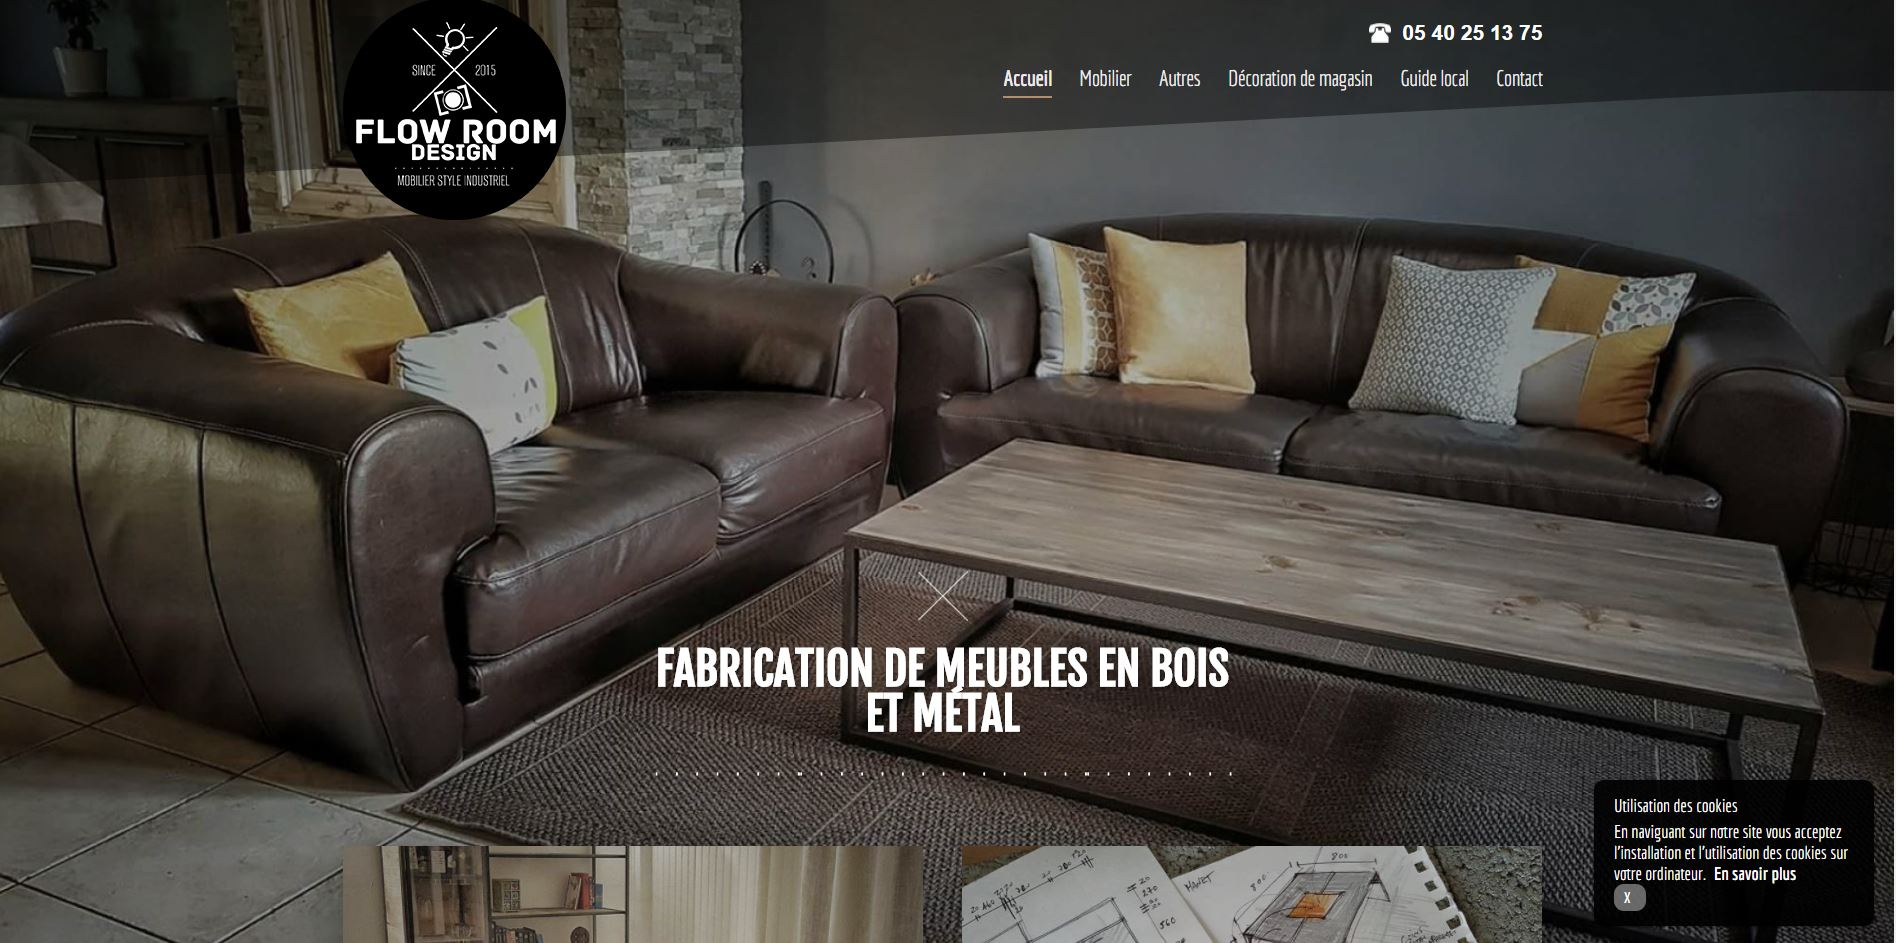 atelier de fabrication de meubles design bordeaux flowroomdesign jalis. Black Bedroom Furniture Sets. Home Design Ideas